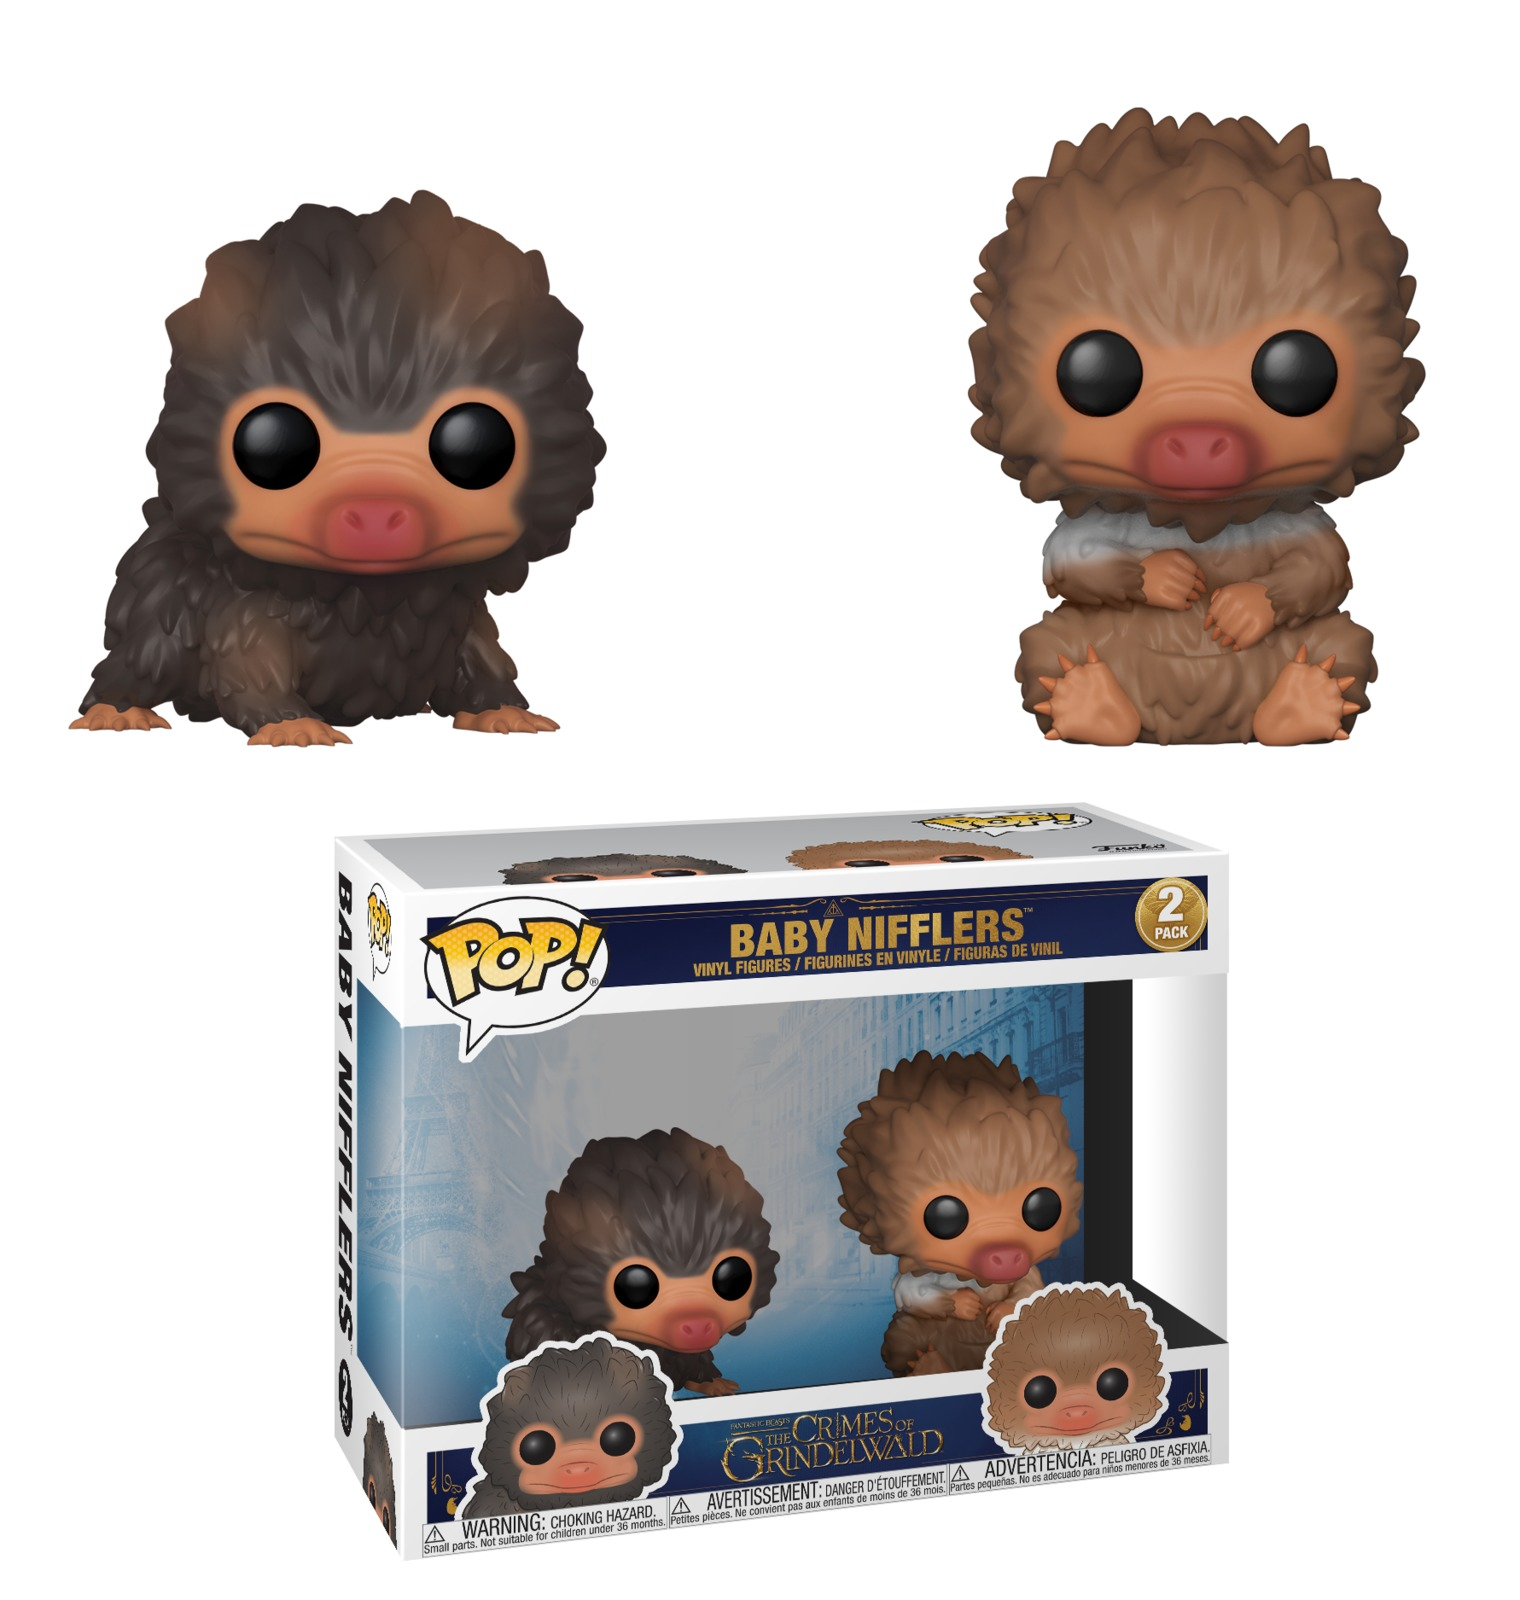 Fantastic Beasts 2 - Baby Nifflers (Brown & Tan ) Pop! Vinyl 2-Pack image